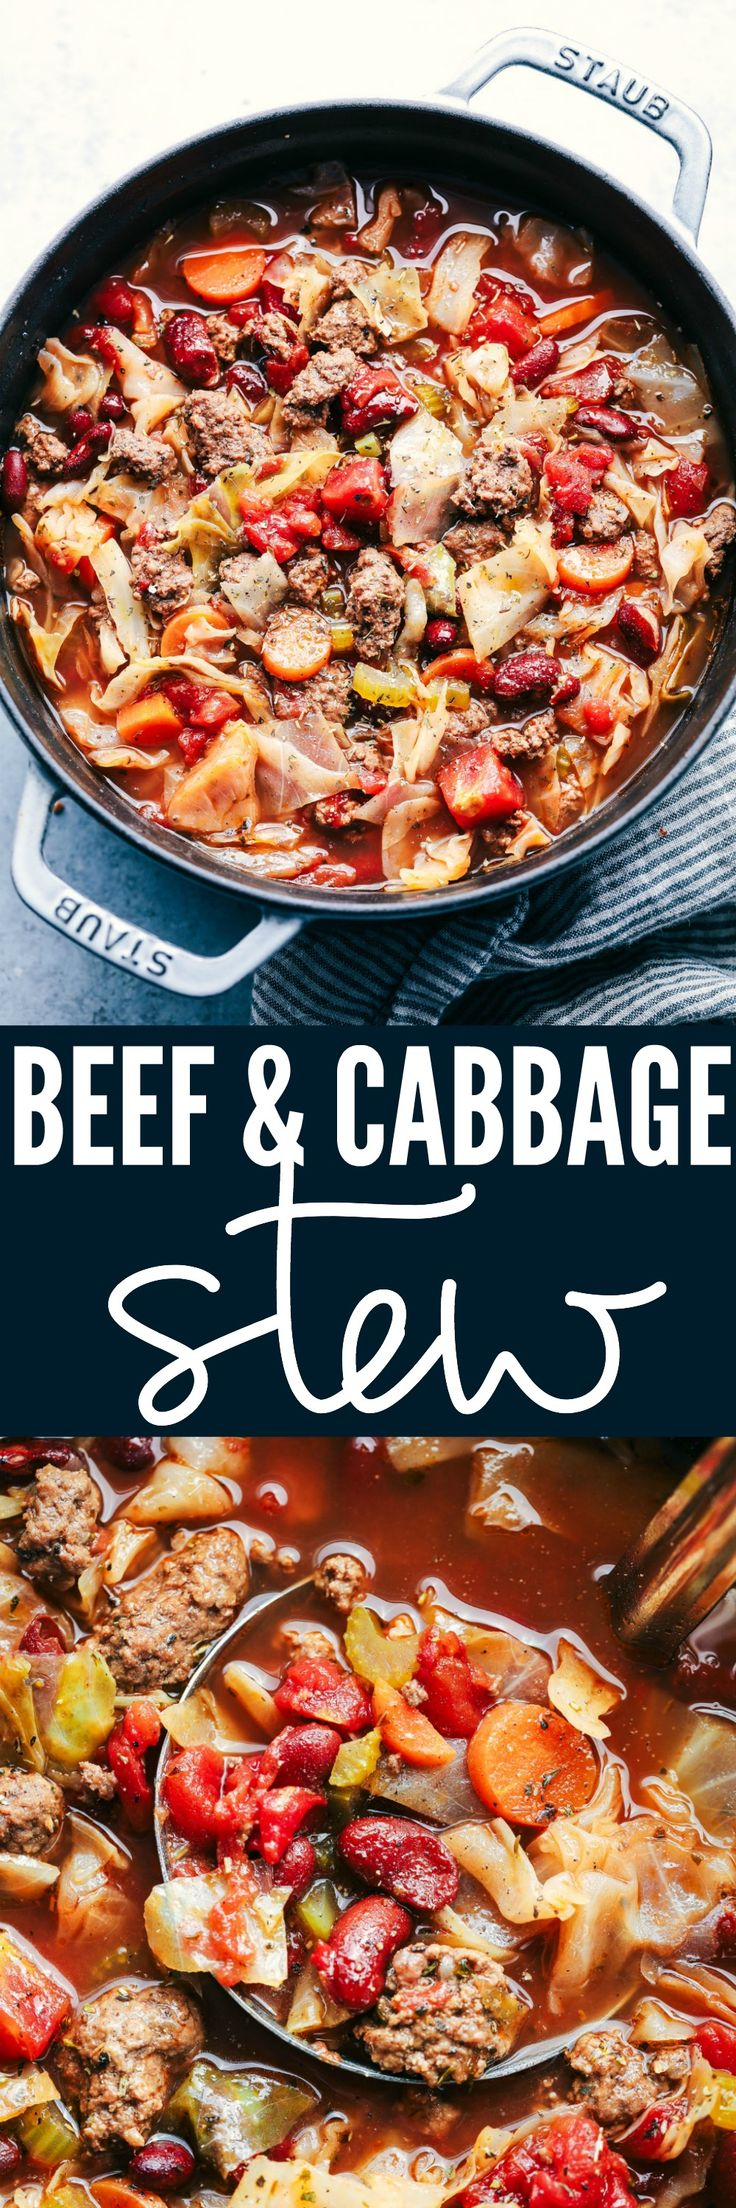 Beef and Cabbage soup is so hearty and filled with beef and tons of amazing and tender veggies. This soup is healthy and delicious and full of flavor!  #beef #cabbage #soup